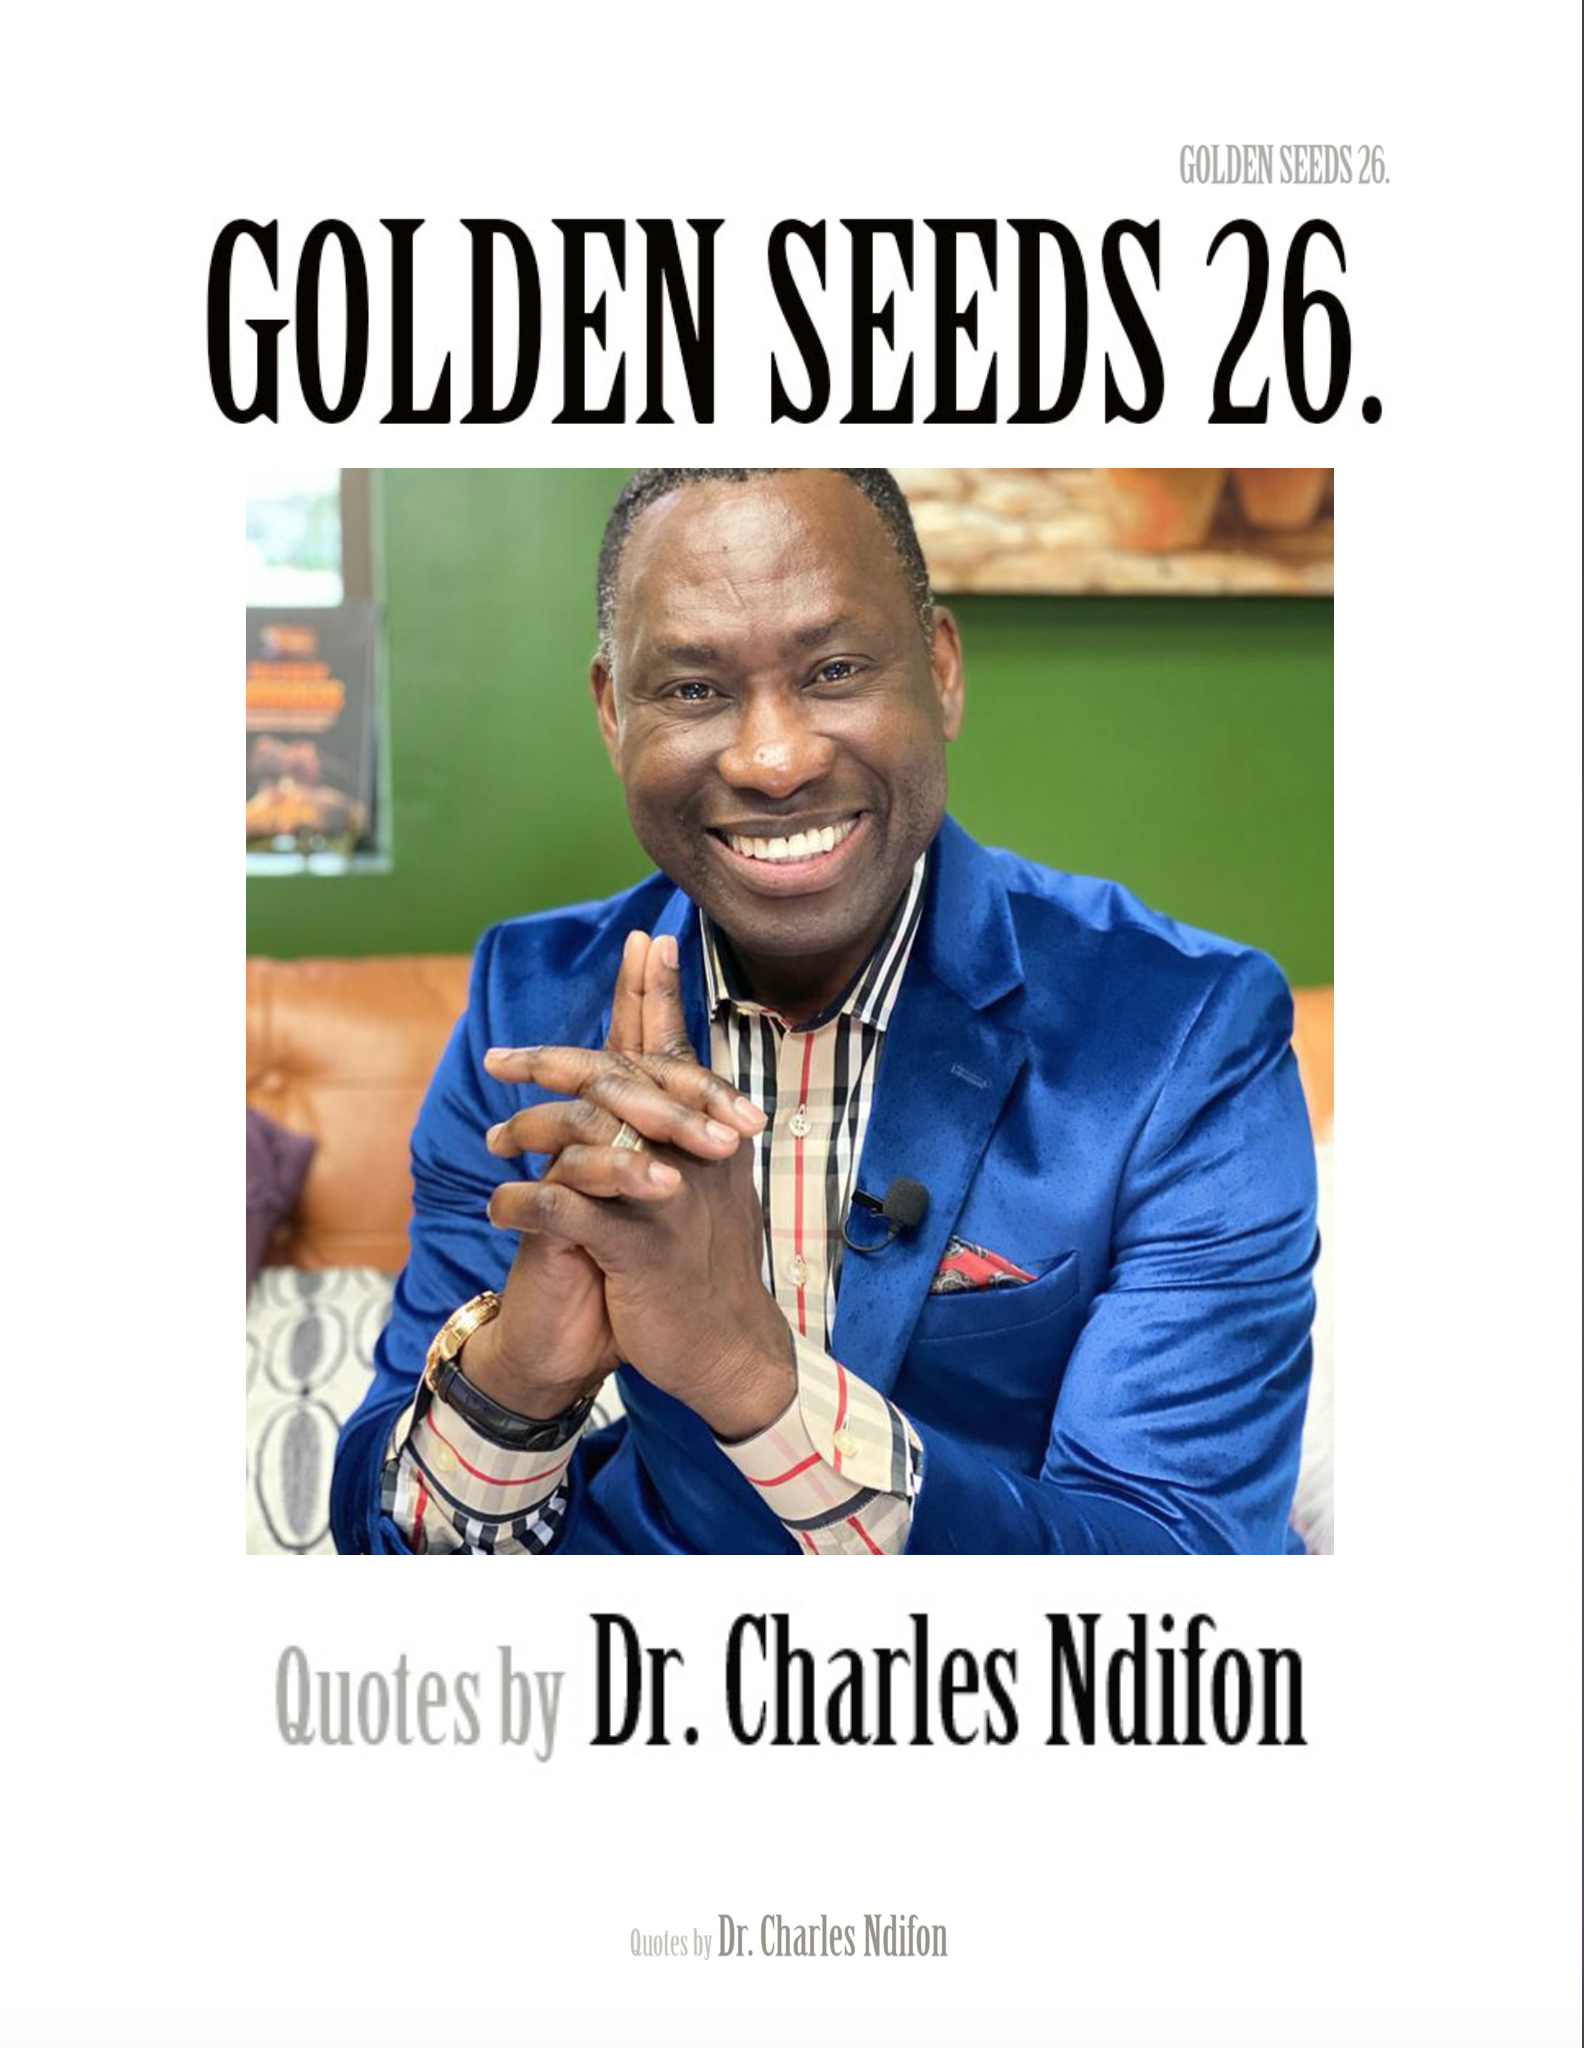 Golden Seeds 26